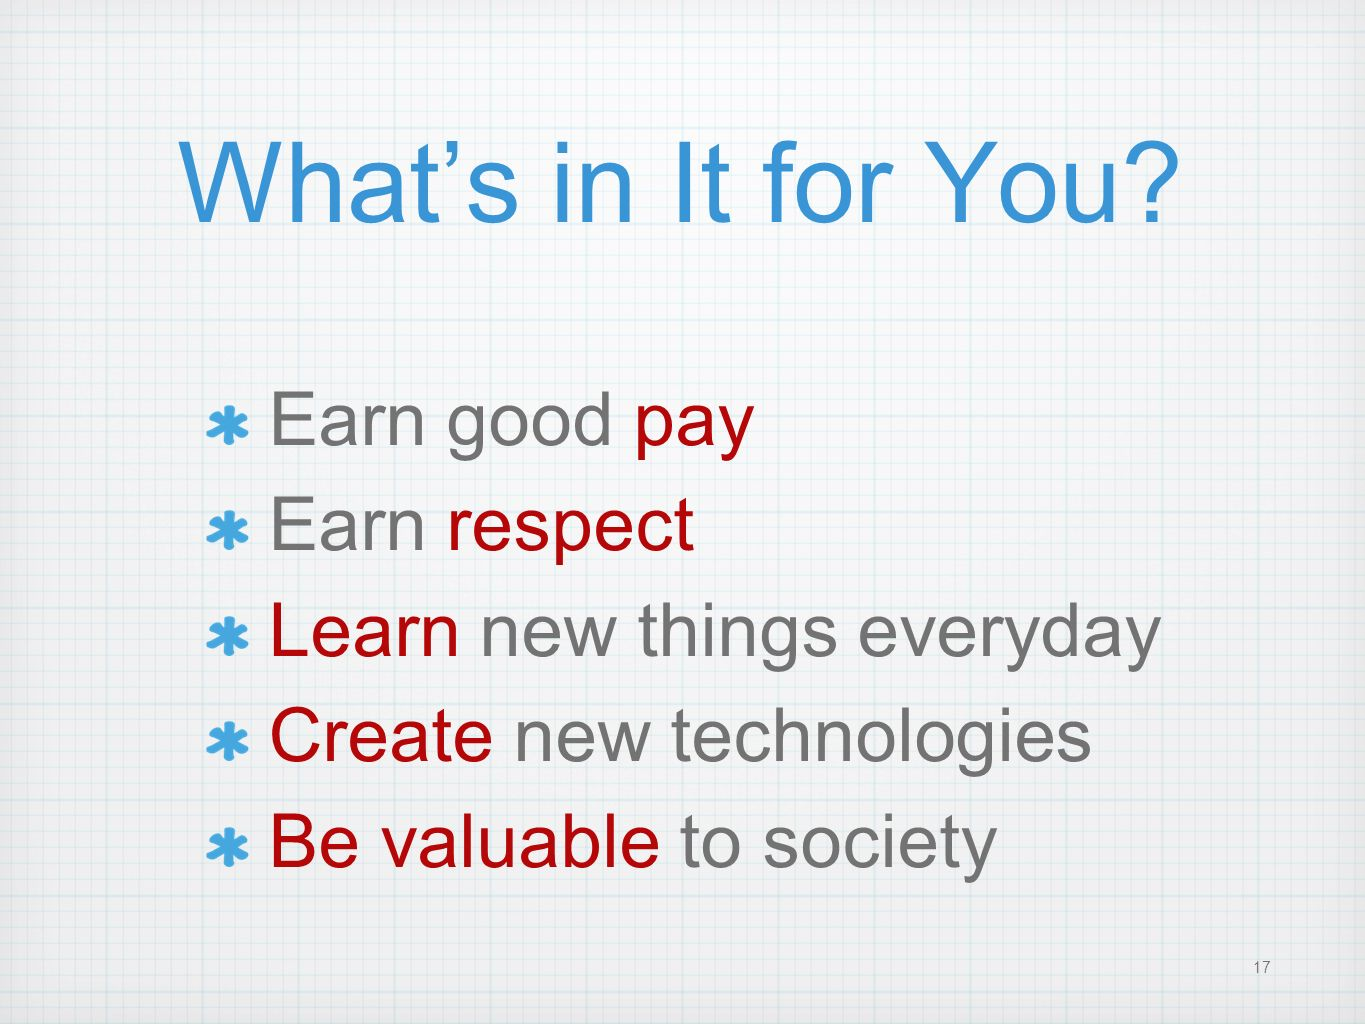 17 Whats in It for You? Earn good pay Earn respect Learn new things everyday Create new technologies Be valuable to society